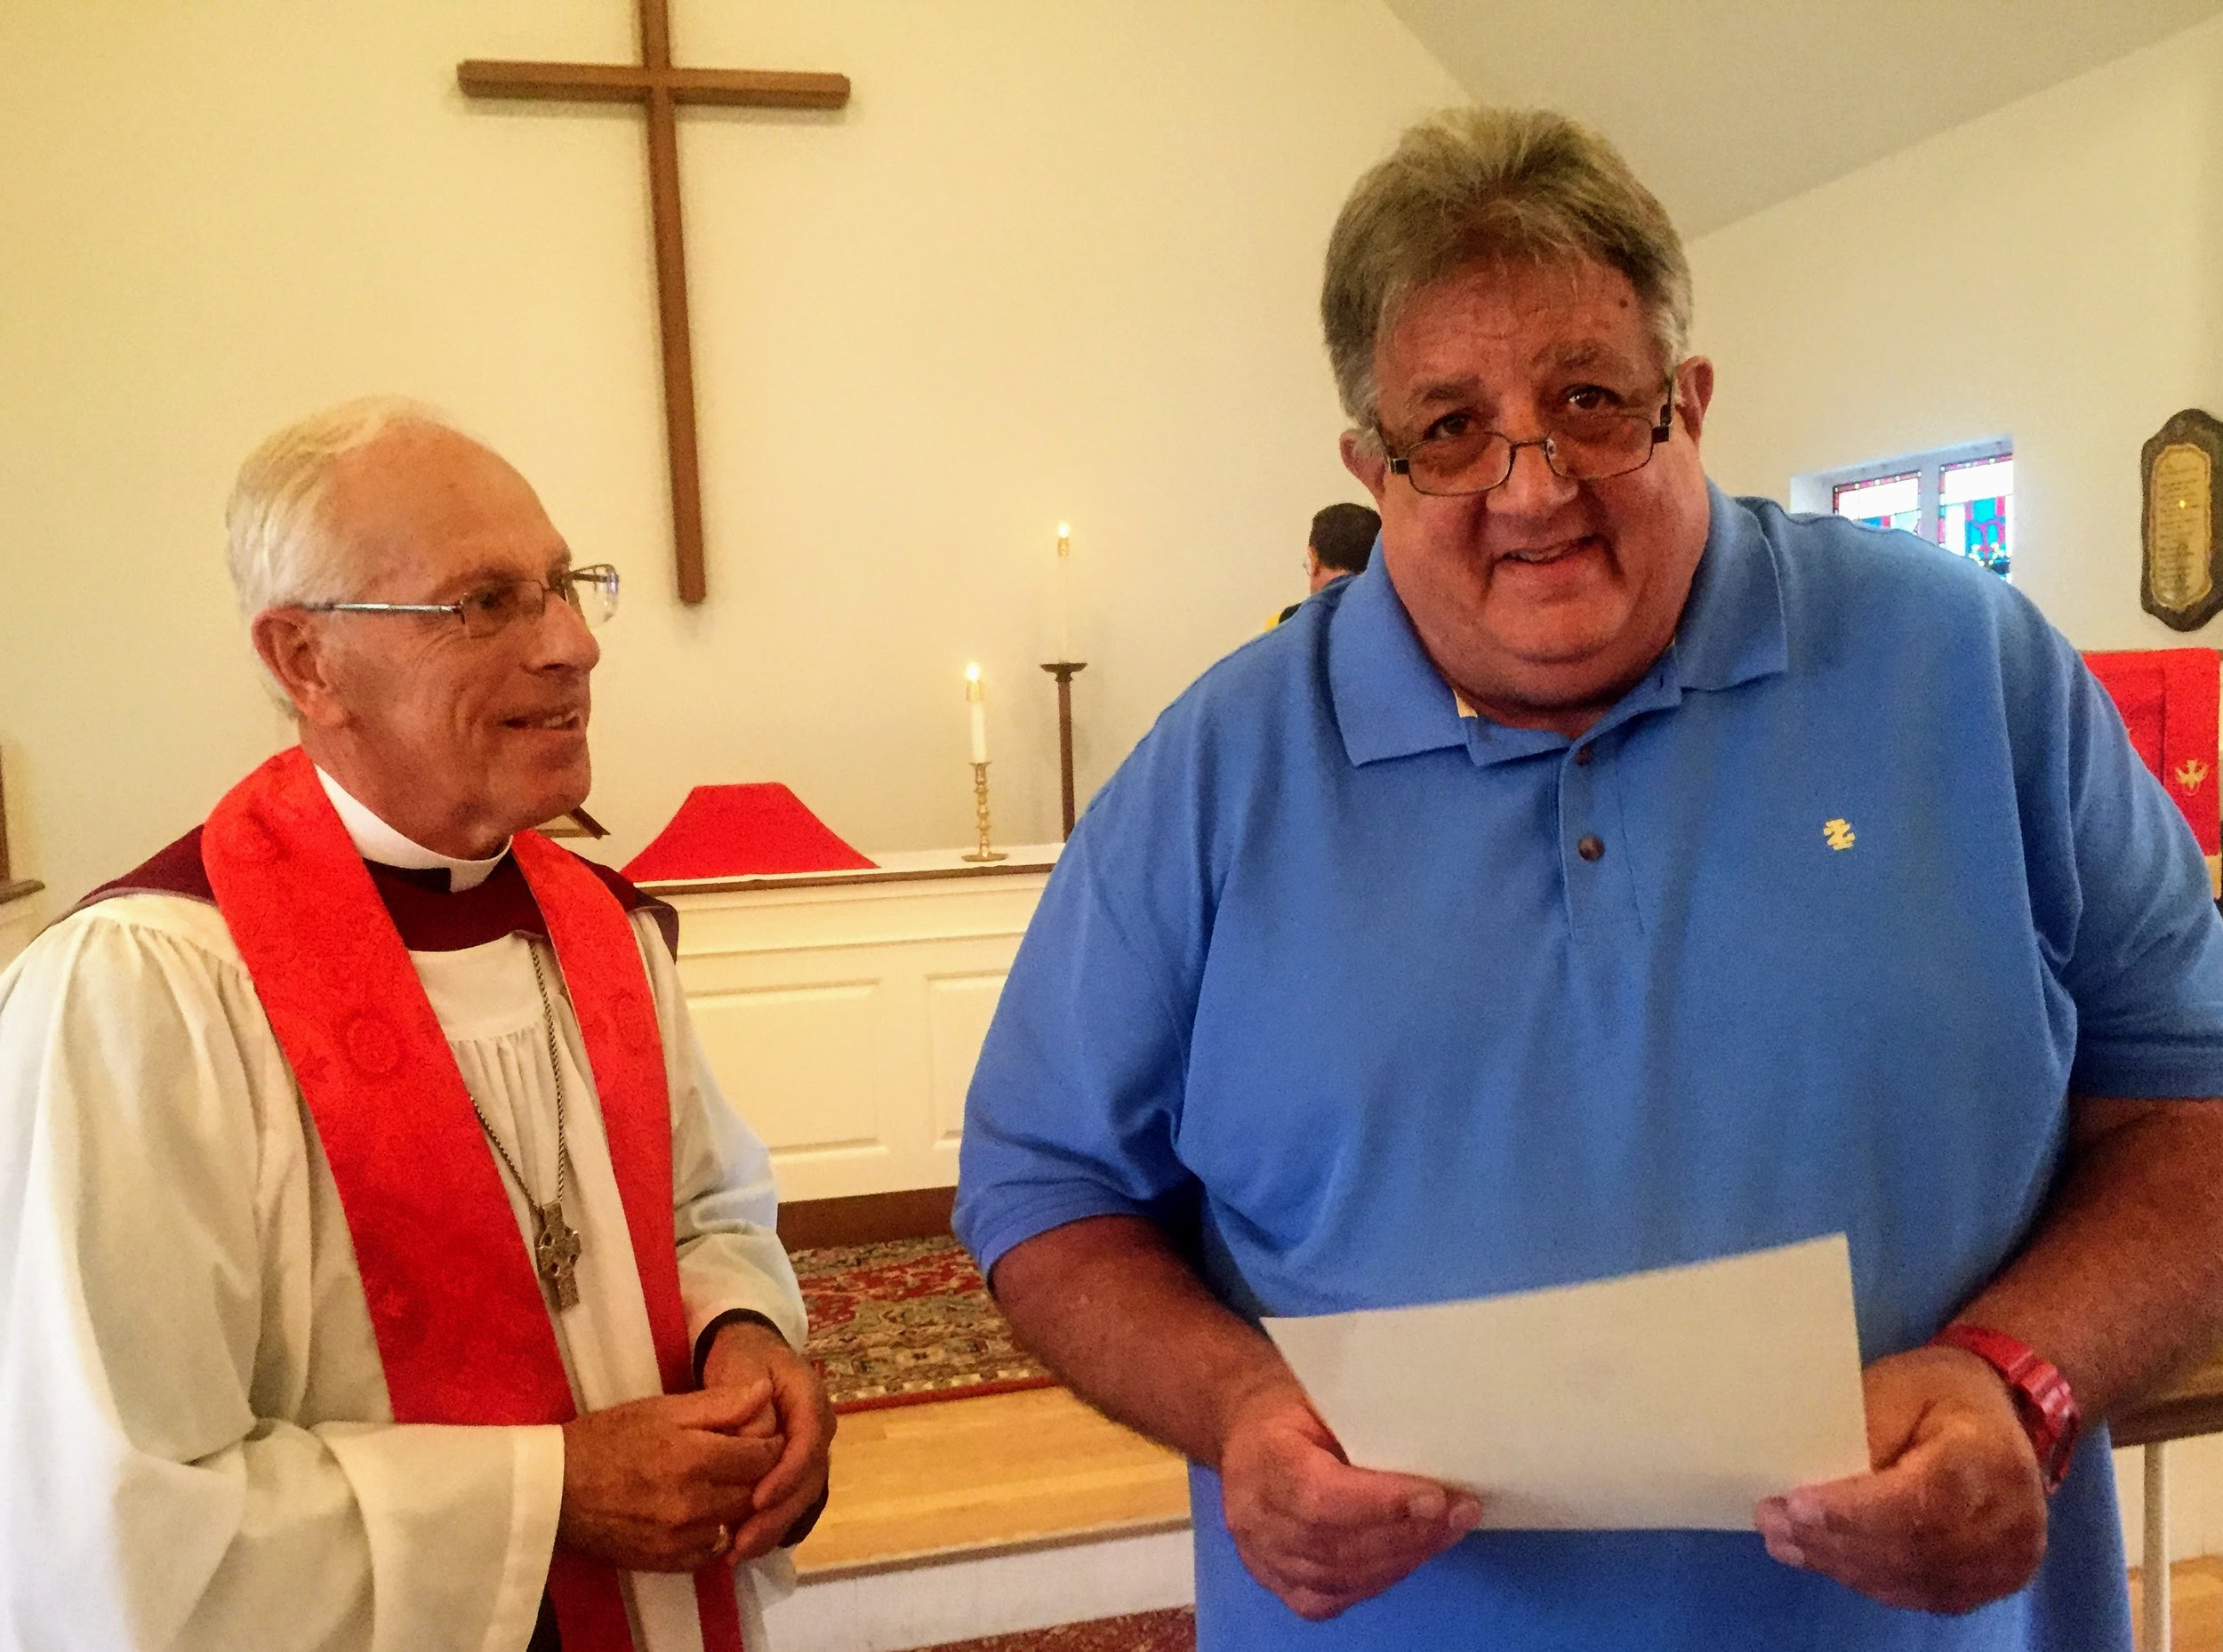 Pastor Rich and Les Scott with Confirmation Certificate